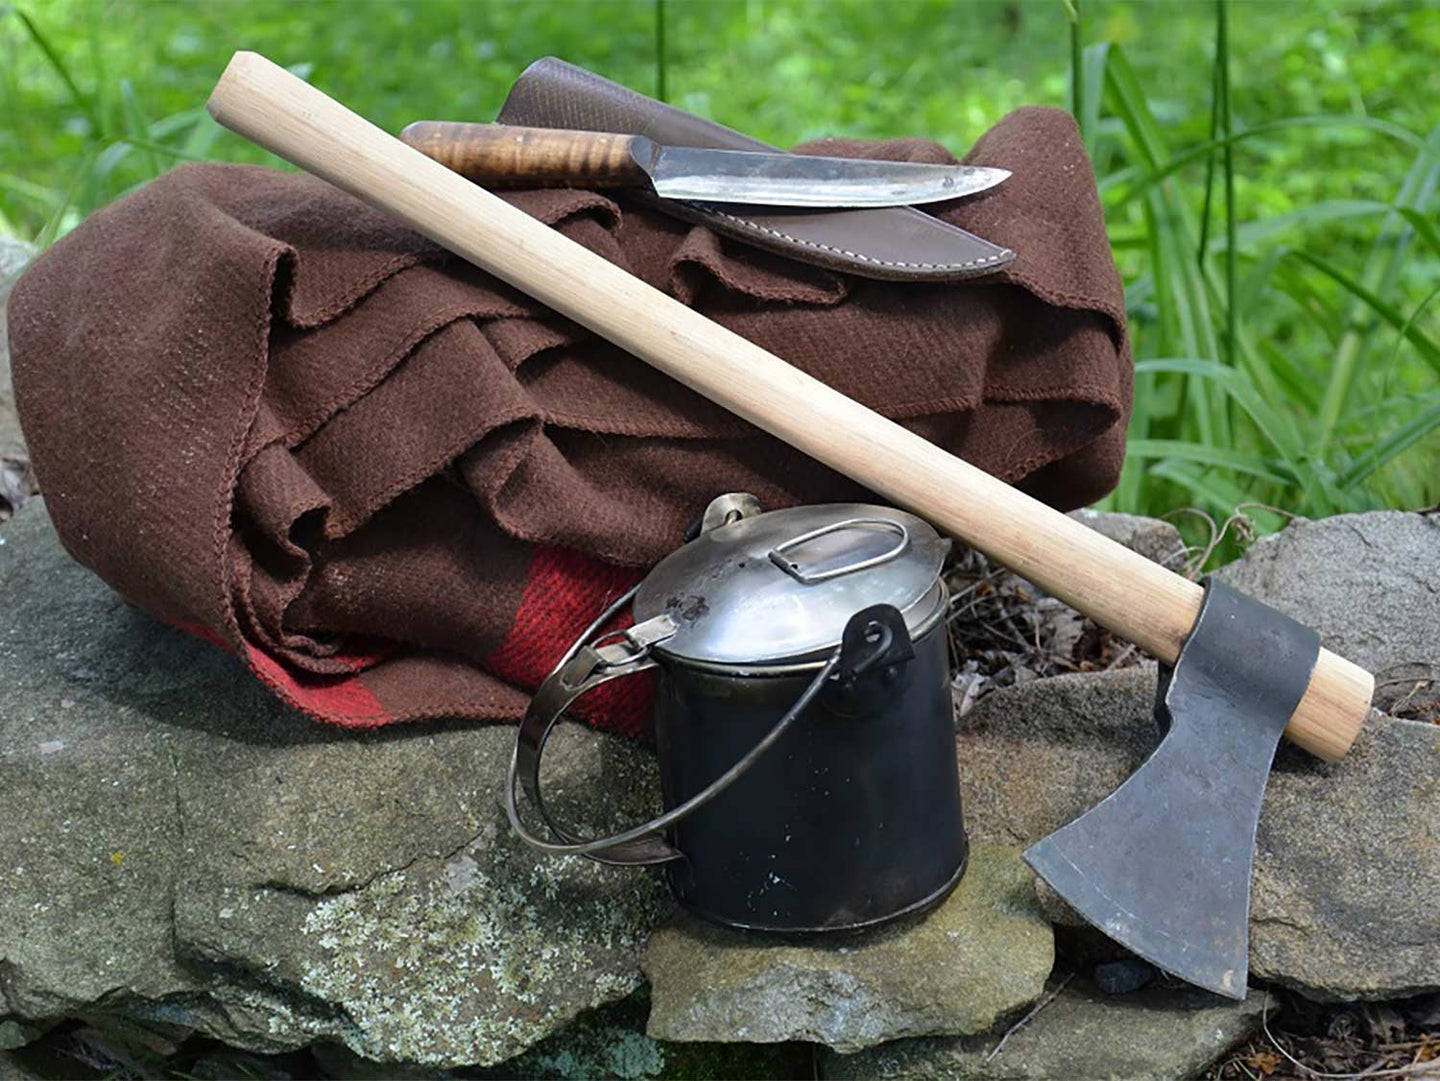 A collection of survival gear and a tomahawk.